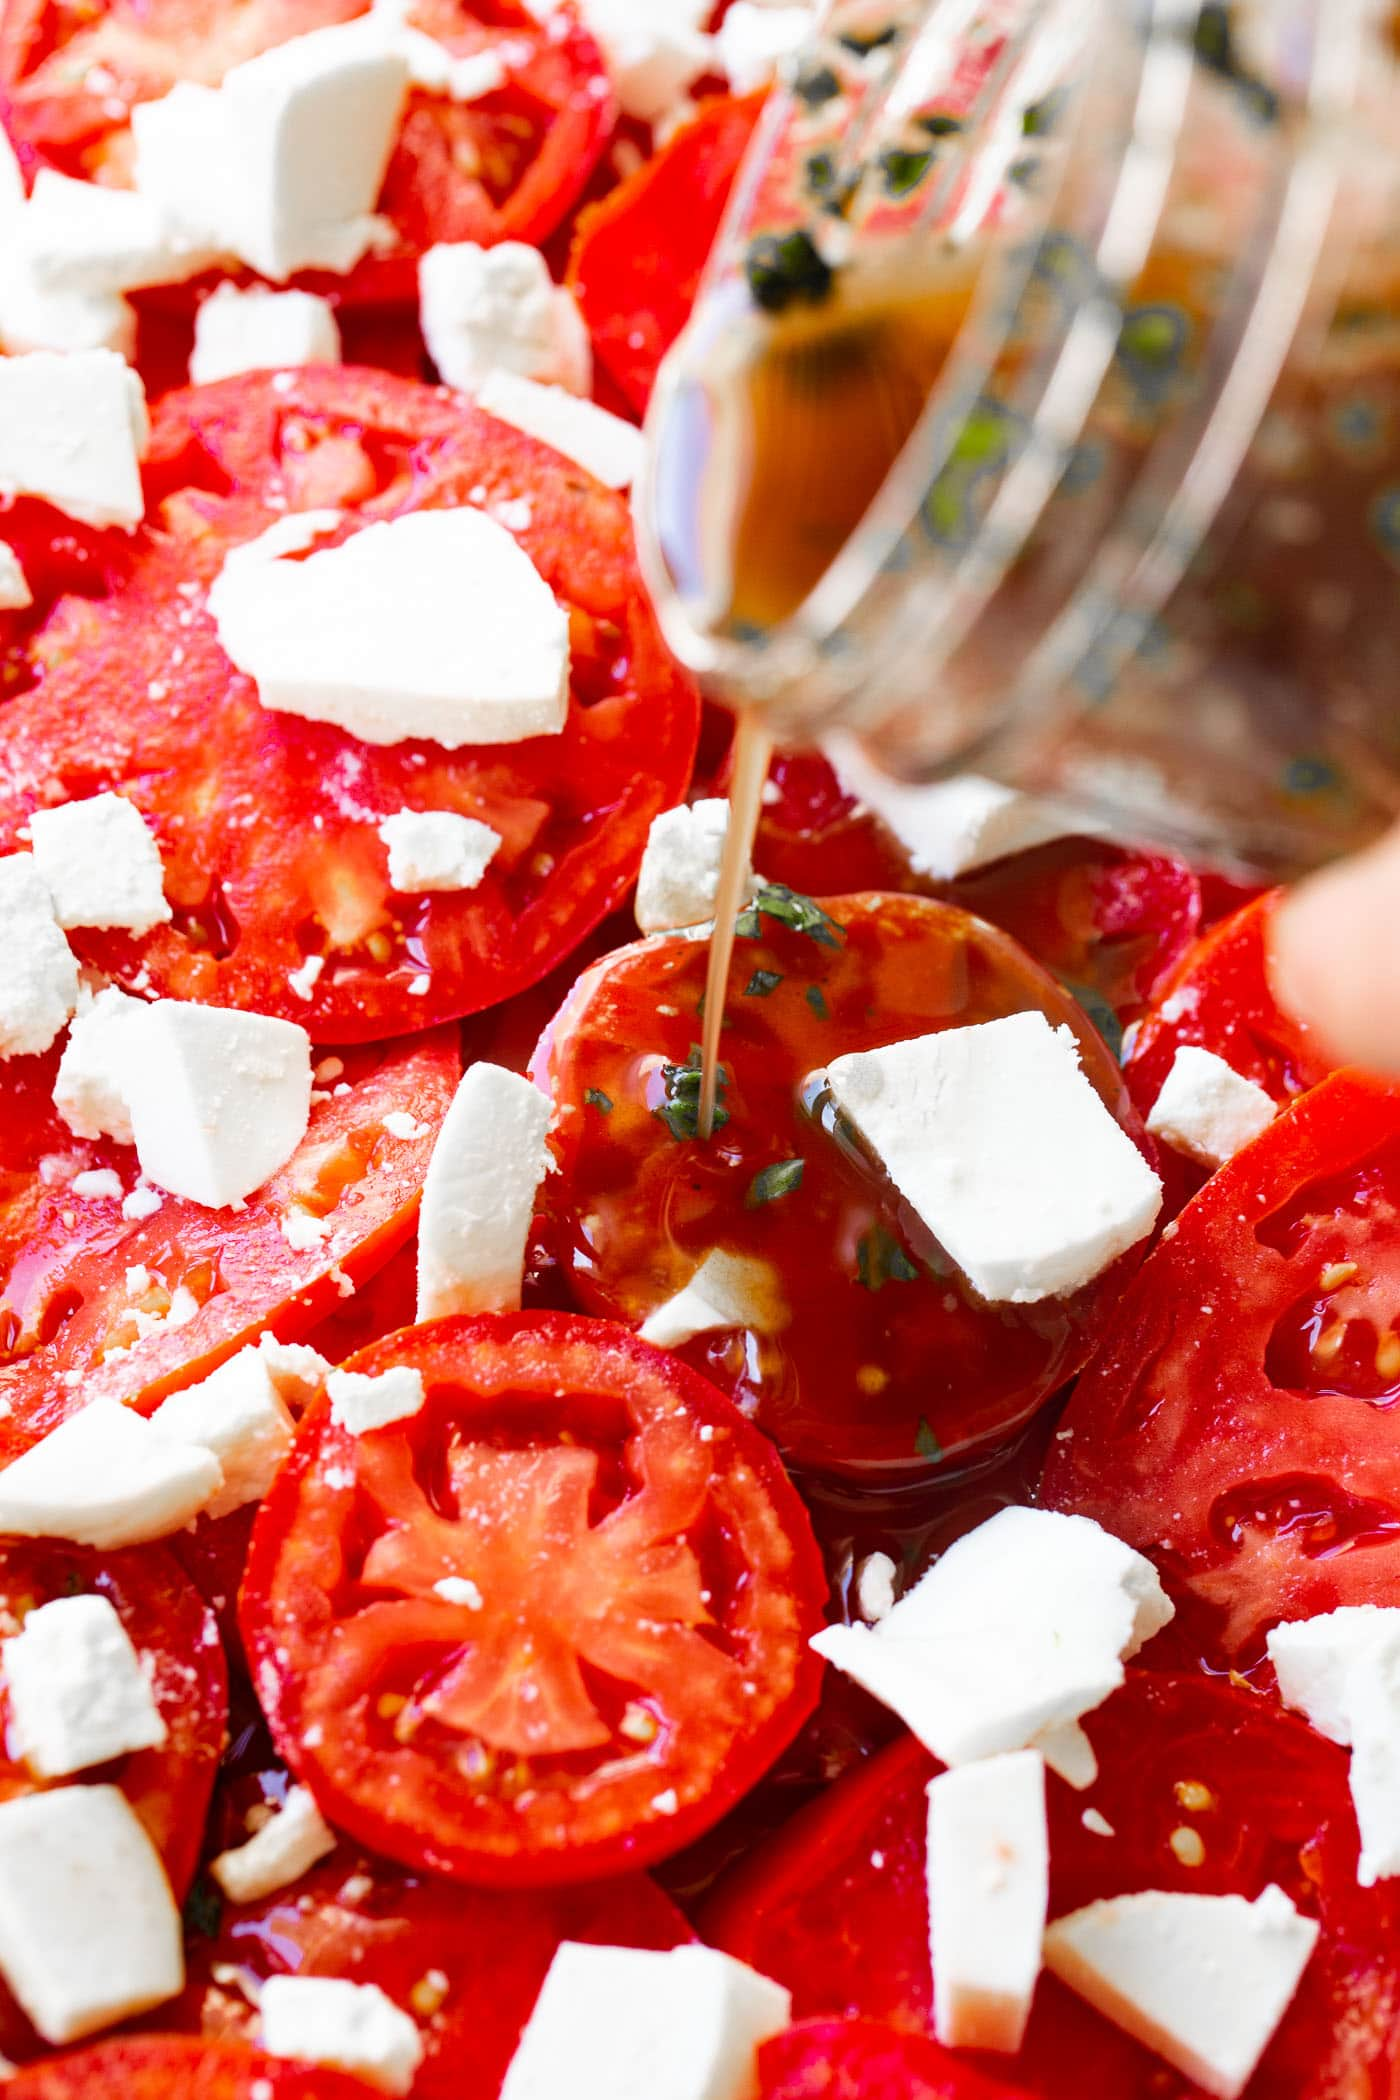 A photo of balsamic vinegar dressing being poured over marinated tomatoes salad.